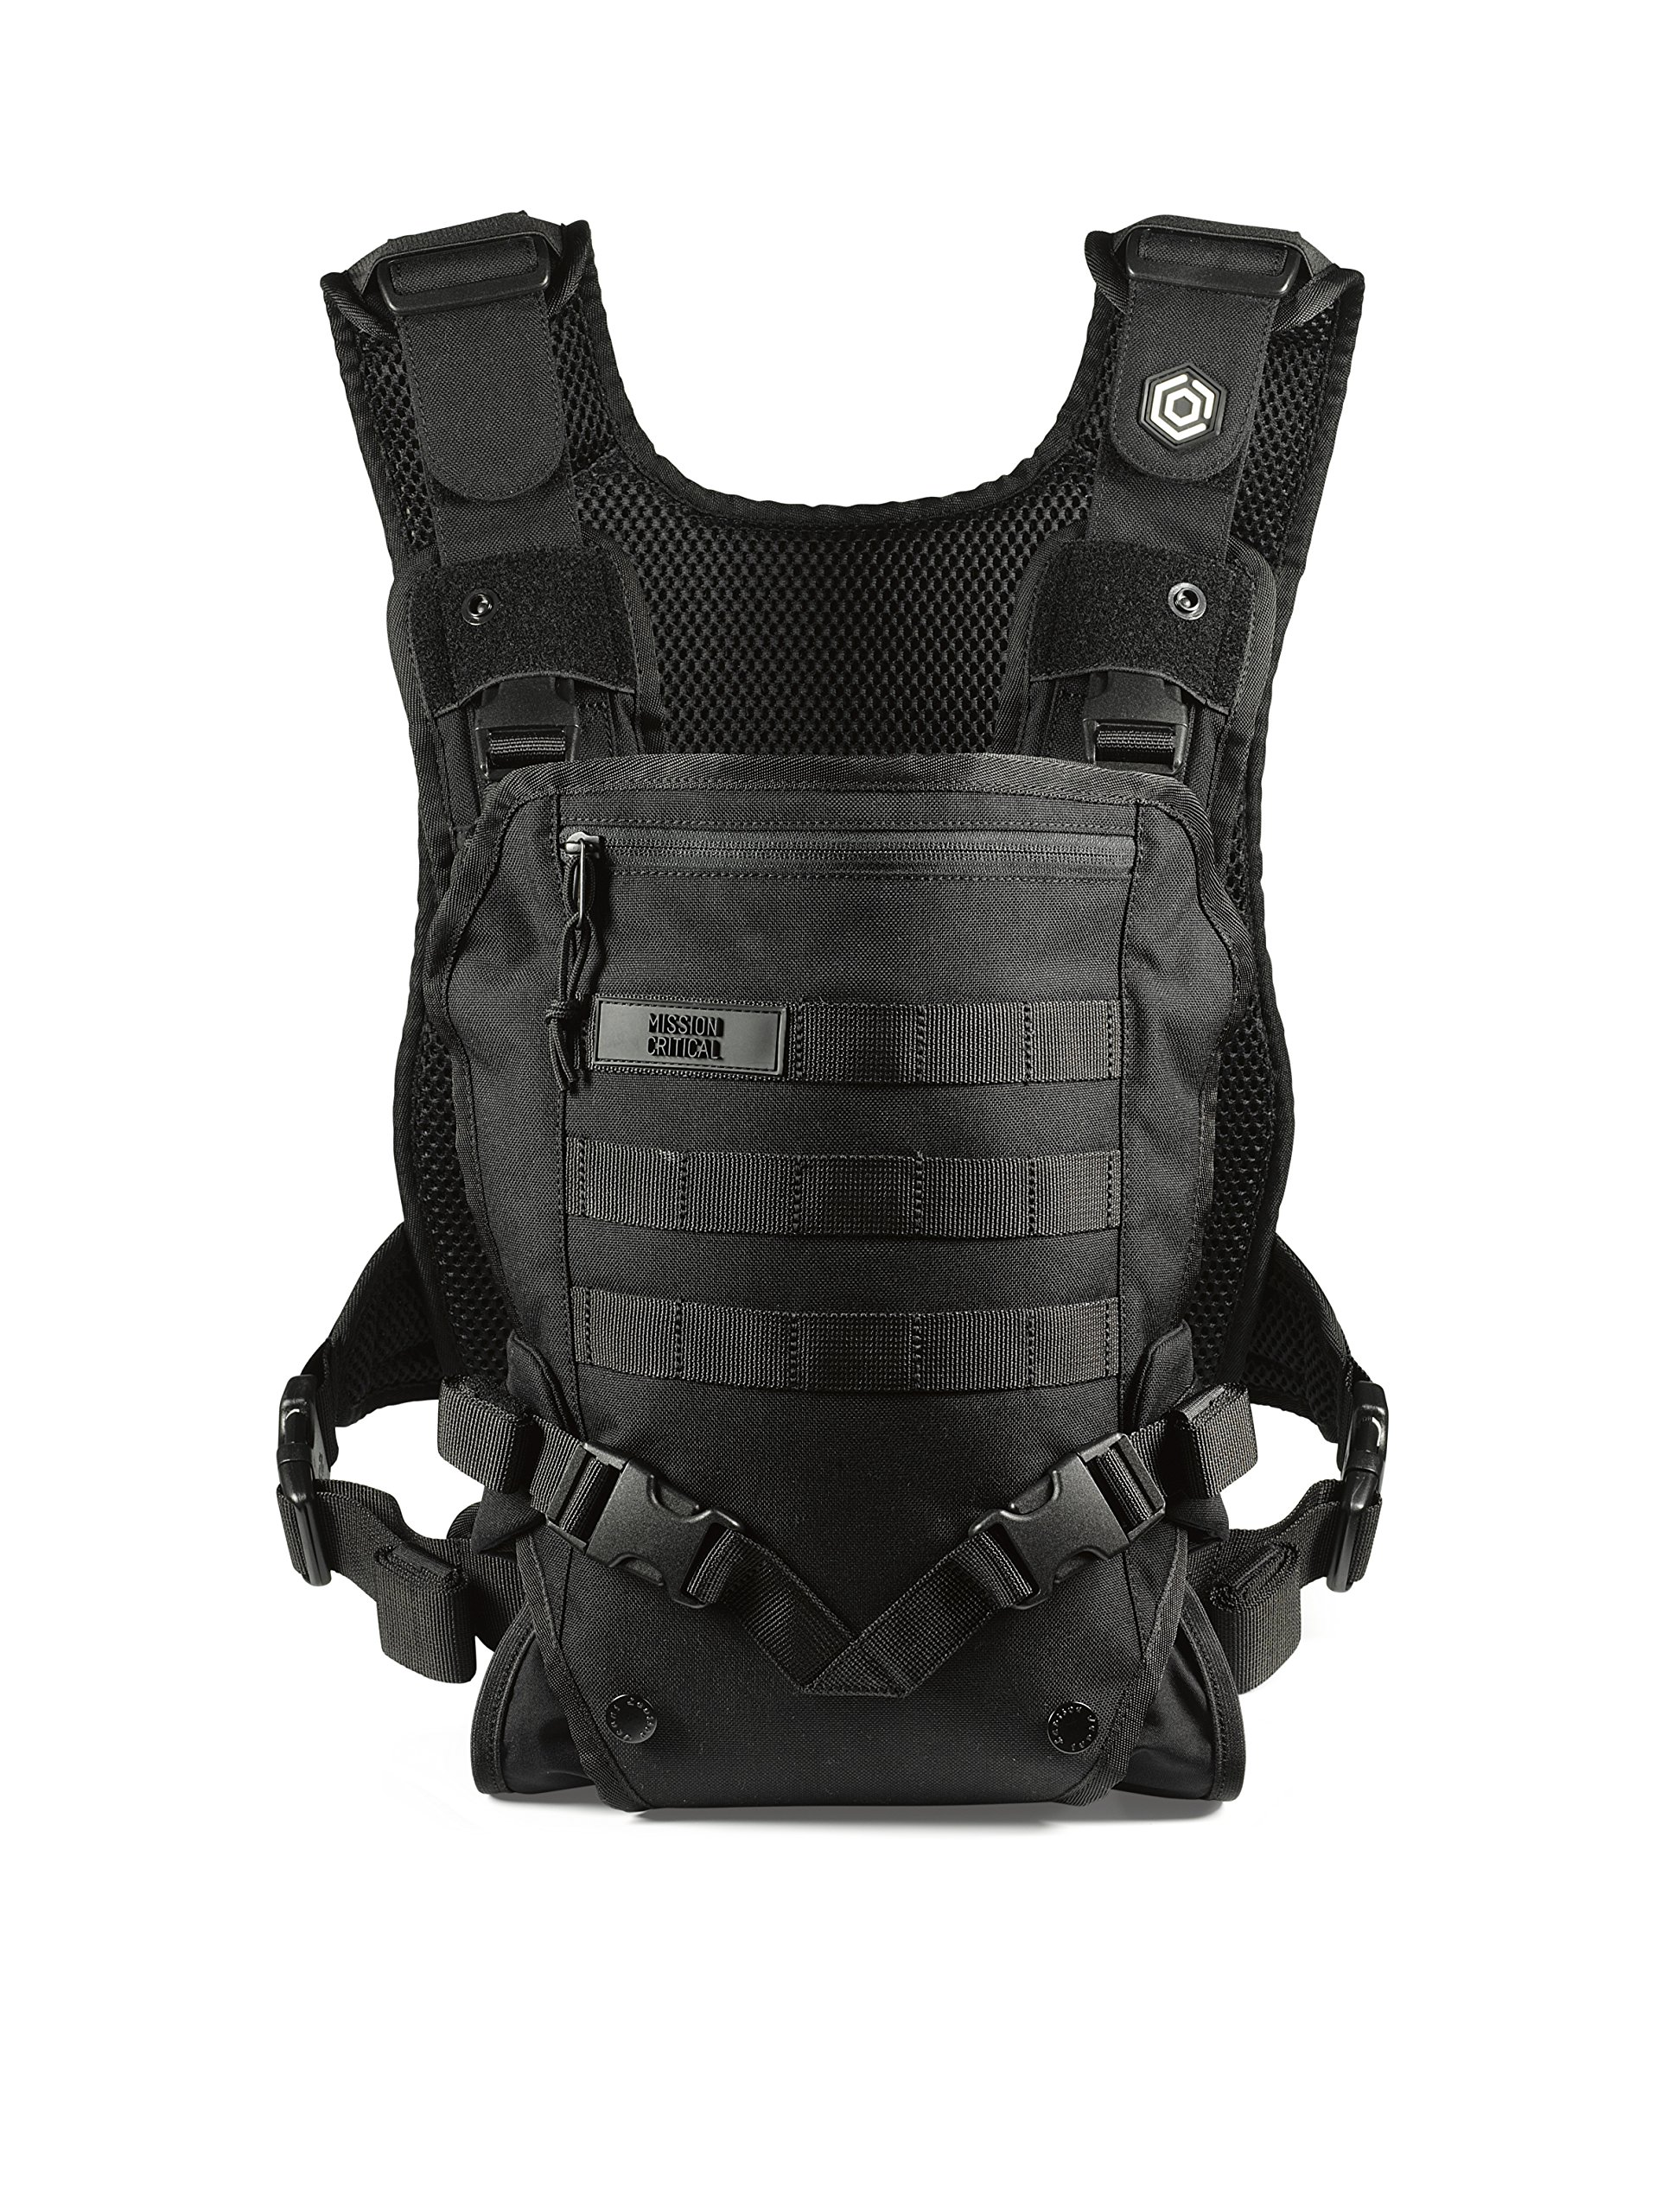 7028bf86012 Amazon.com   Men s Baby Carrier - Front Baby Carrier - Baby Carrier for  Dads - by Mission Critical - Black   Baby